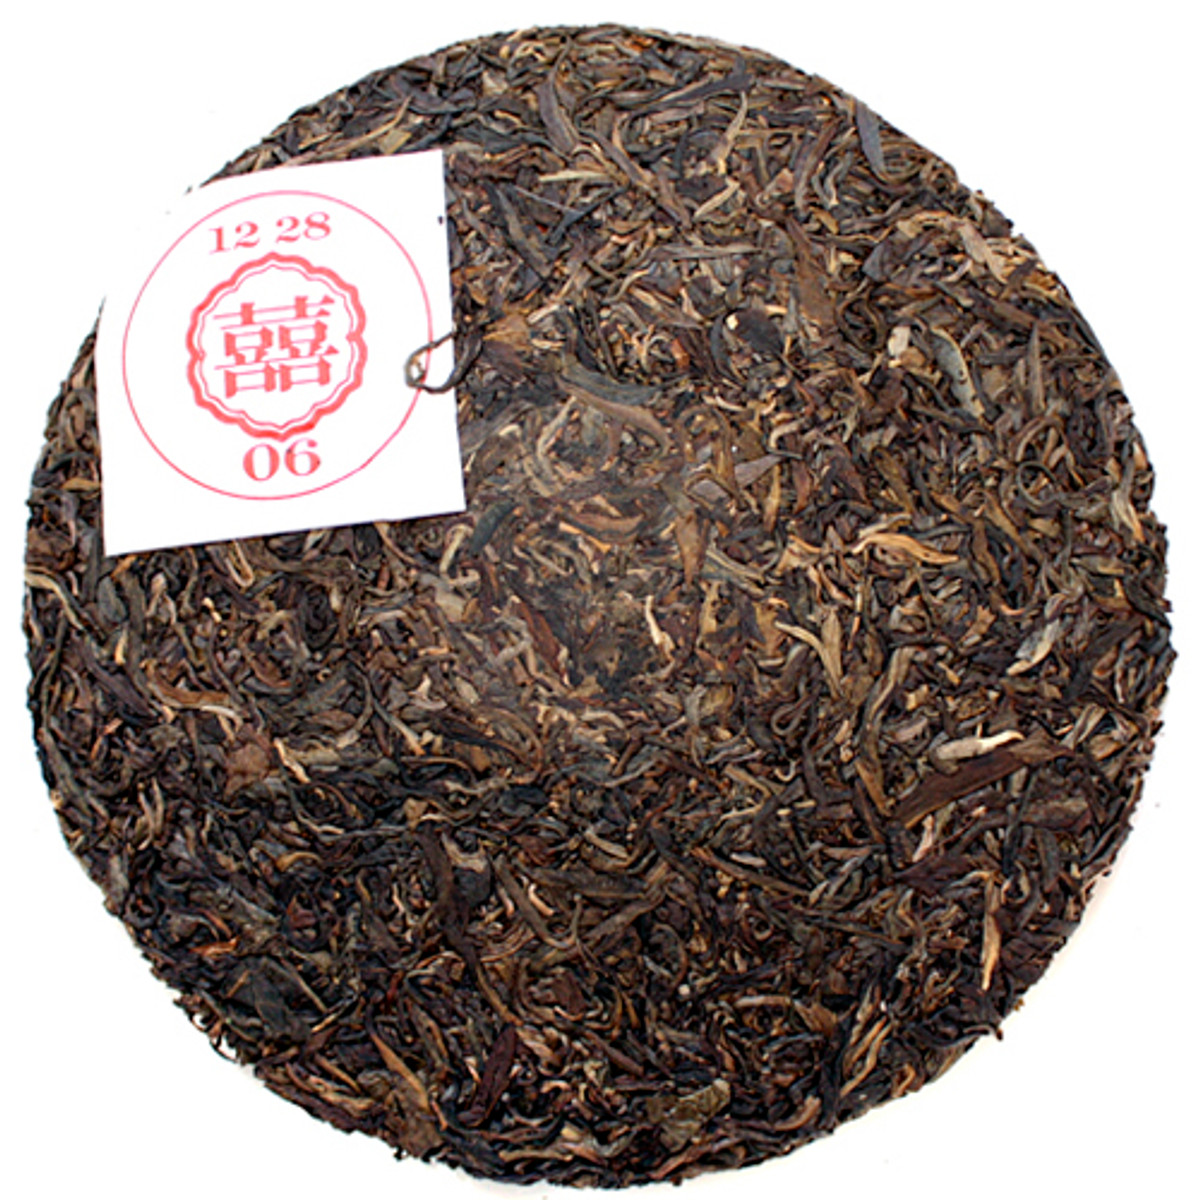 YiWu Mt. Raw Puerh (Cake, around 357g)